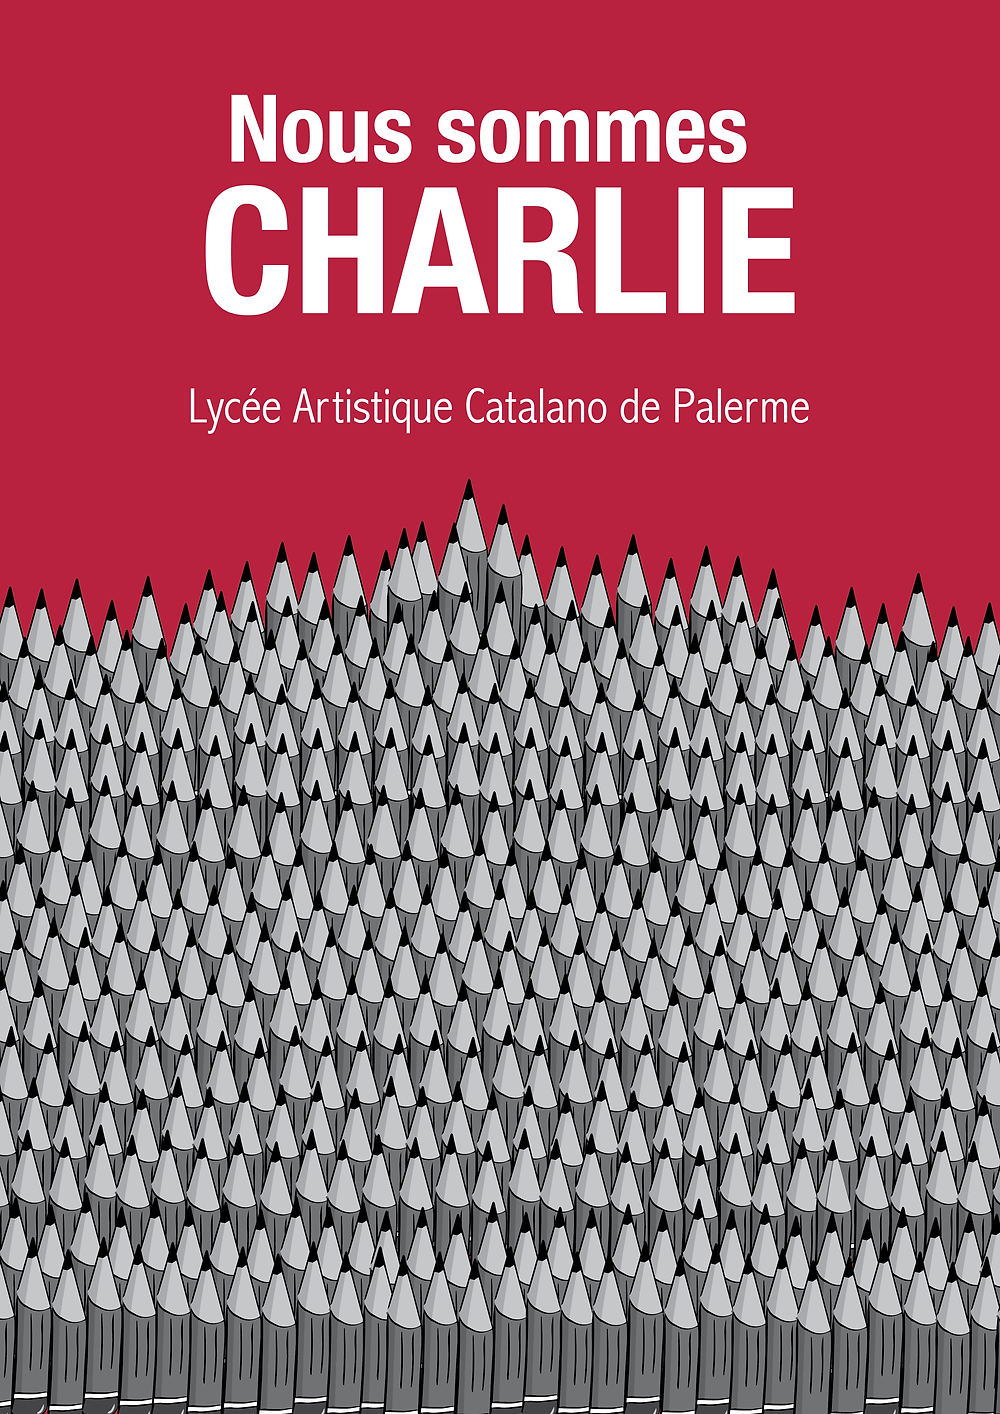 Nous sommes Charlie - Liceo Artistico Catalano.png